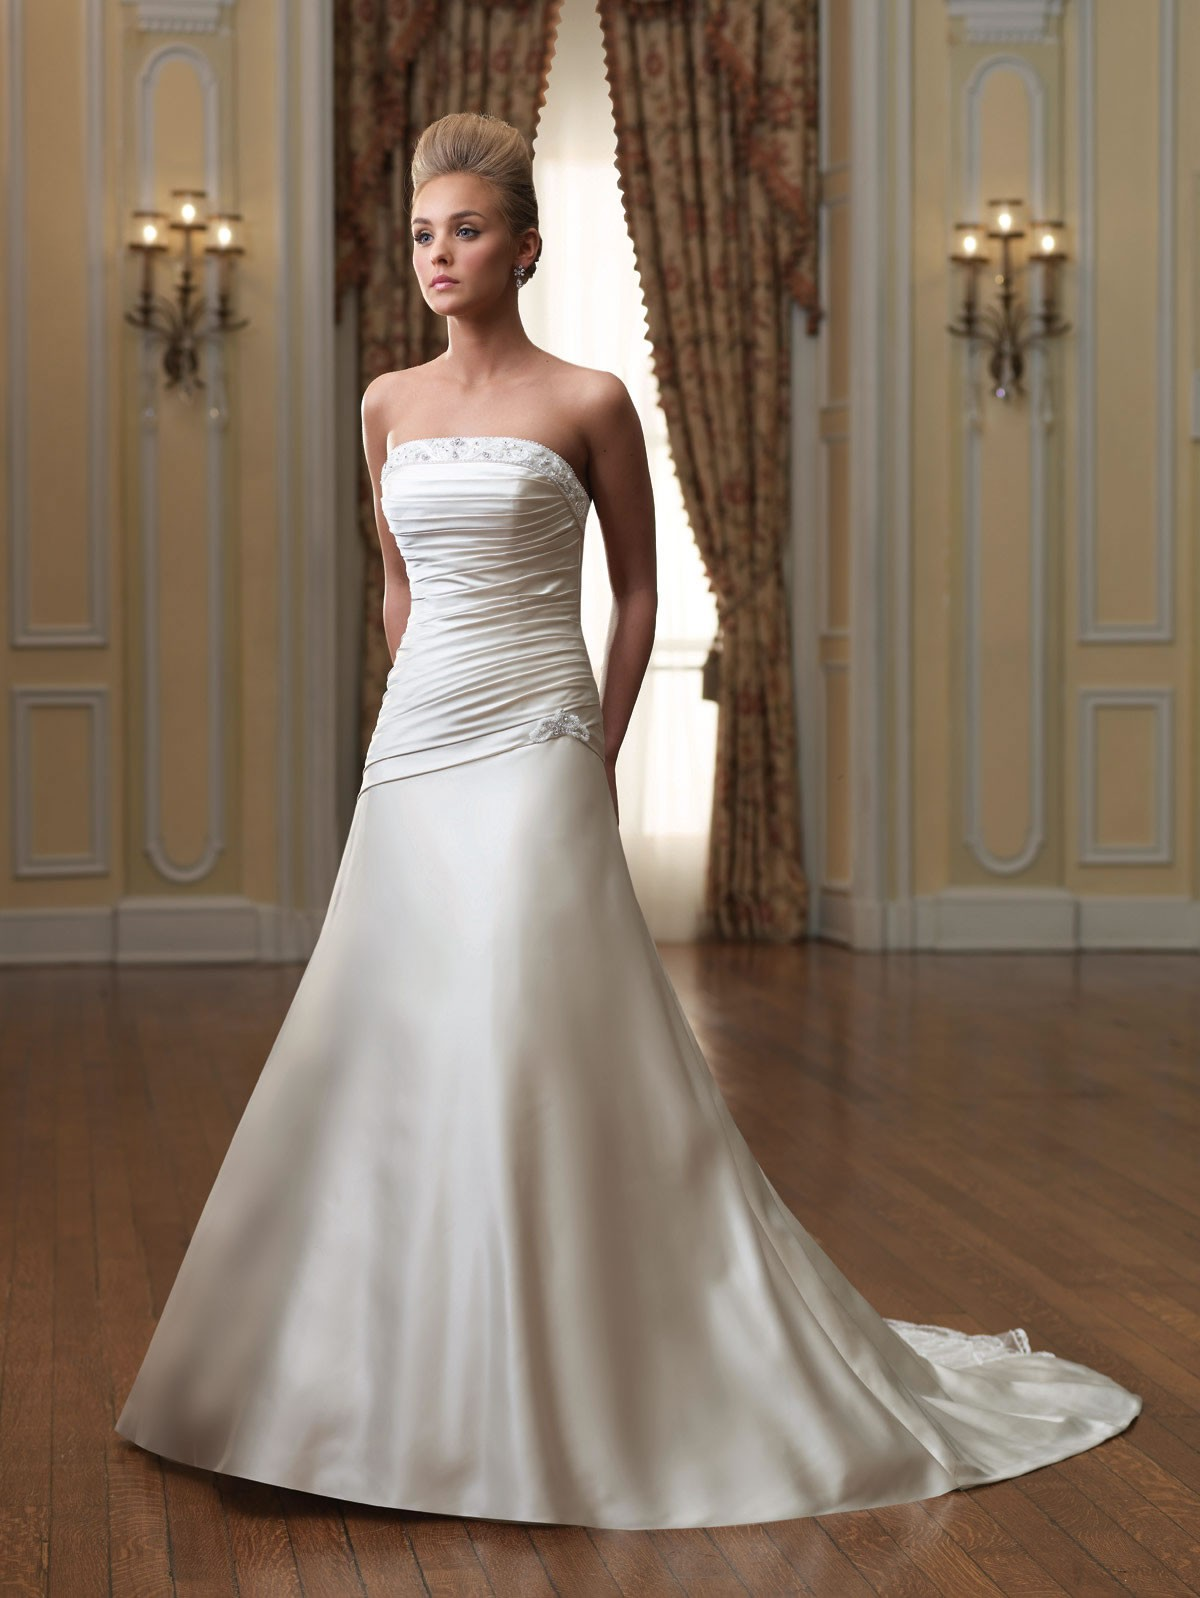 Bridal Wedding Dresses | Style - MB3015 in Ivory/Champagne